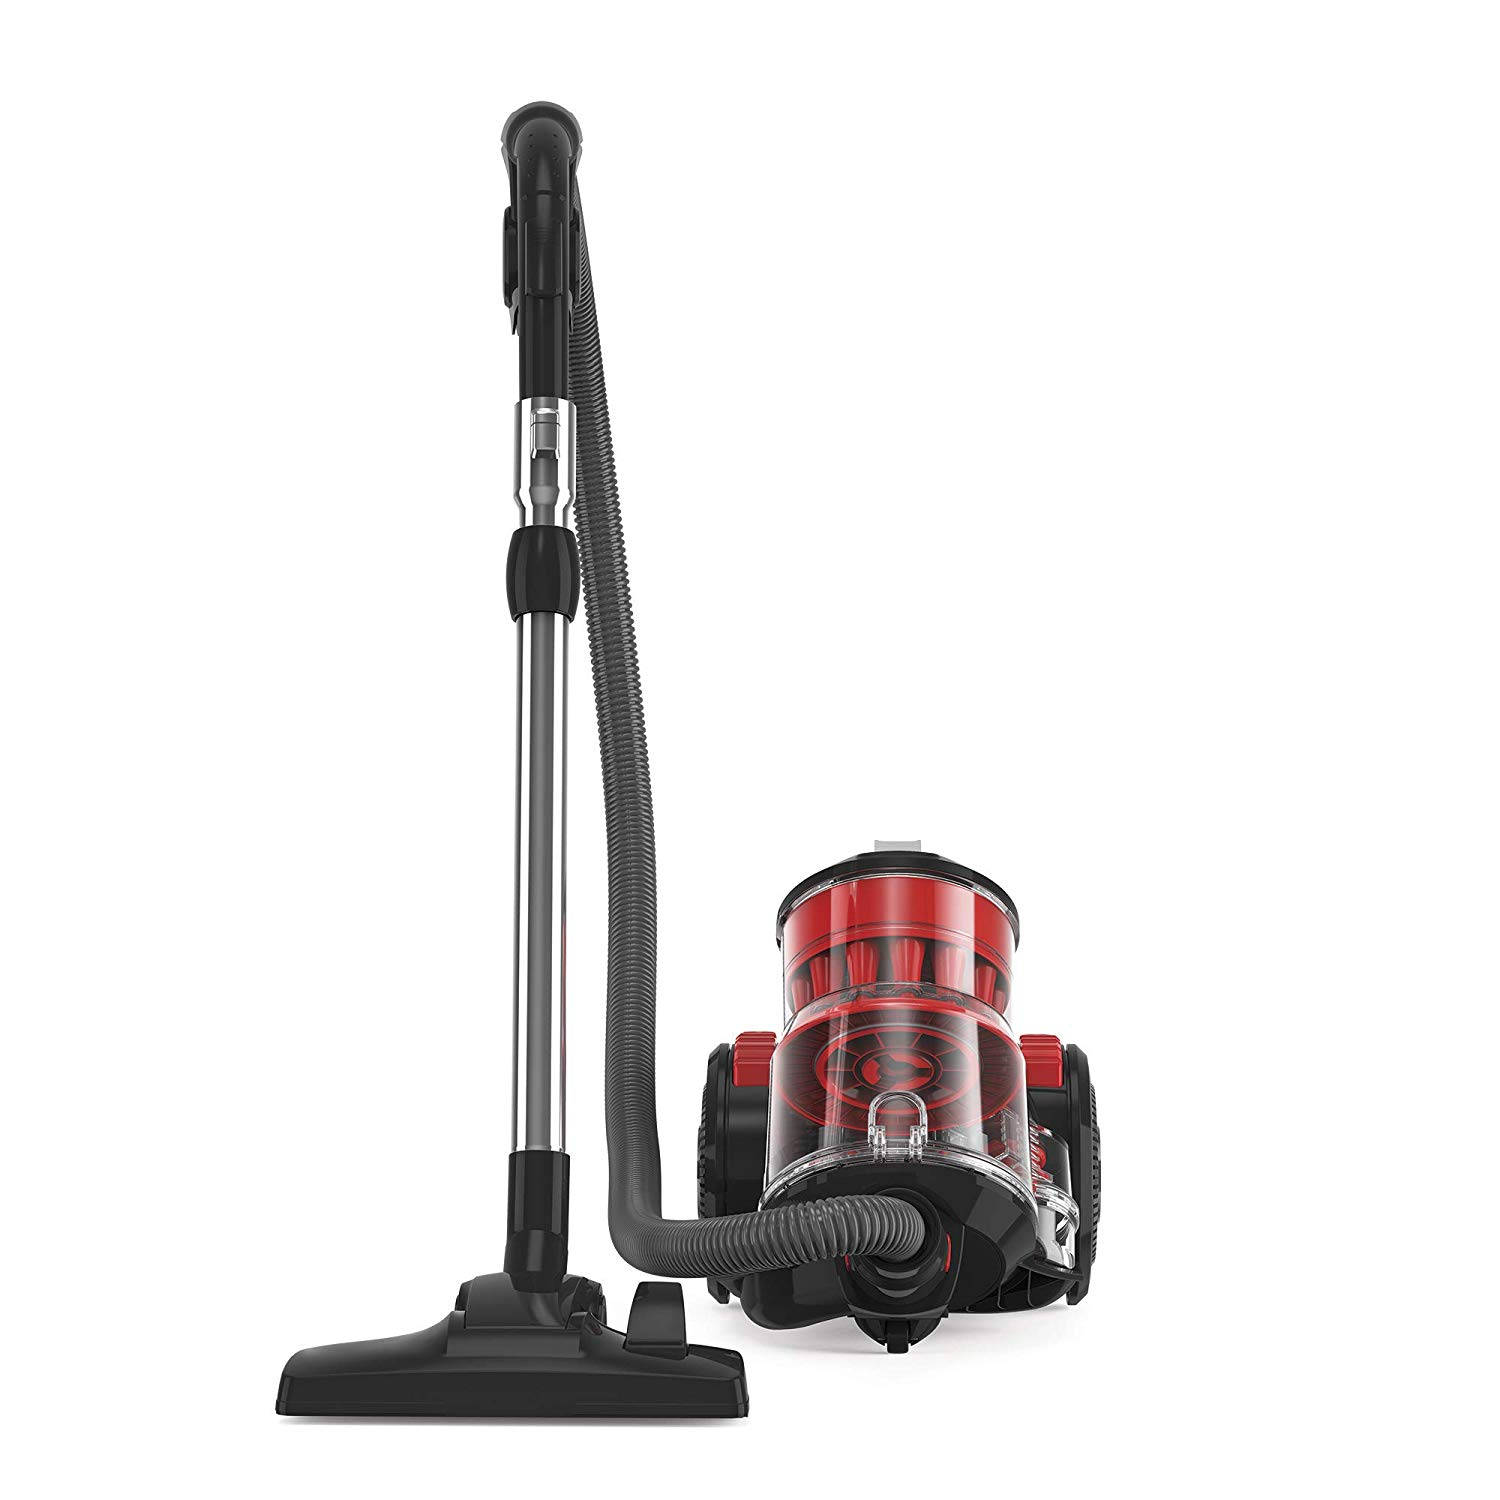 Hoover HC88-MAM Air Multi Cyclonic Canister Vacuum Cleaner - Red/Gray